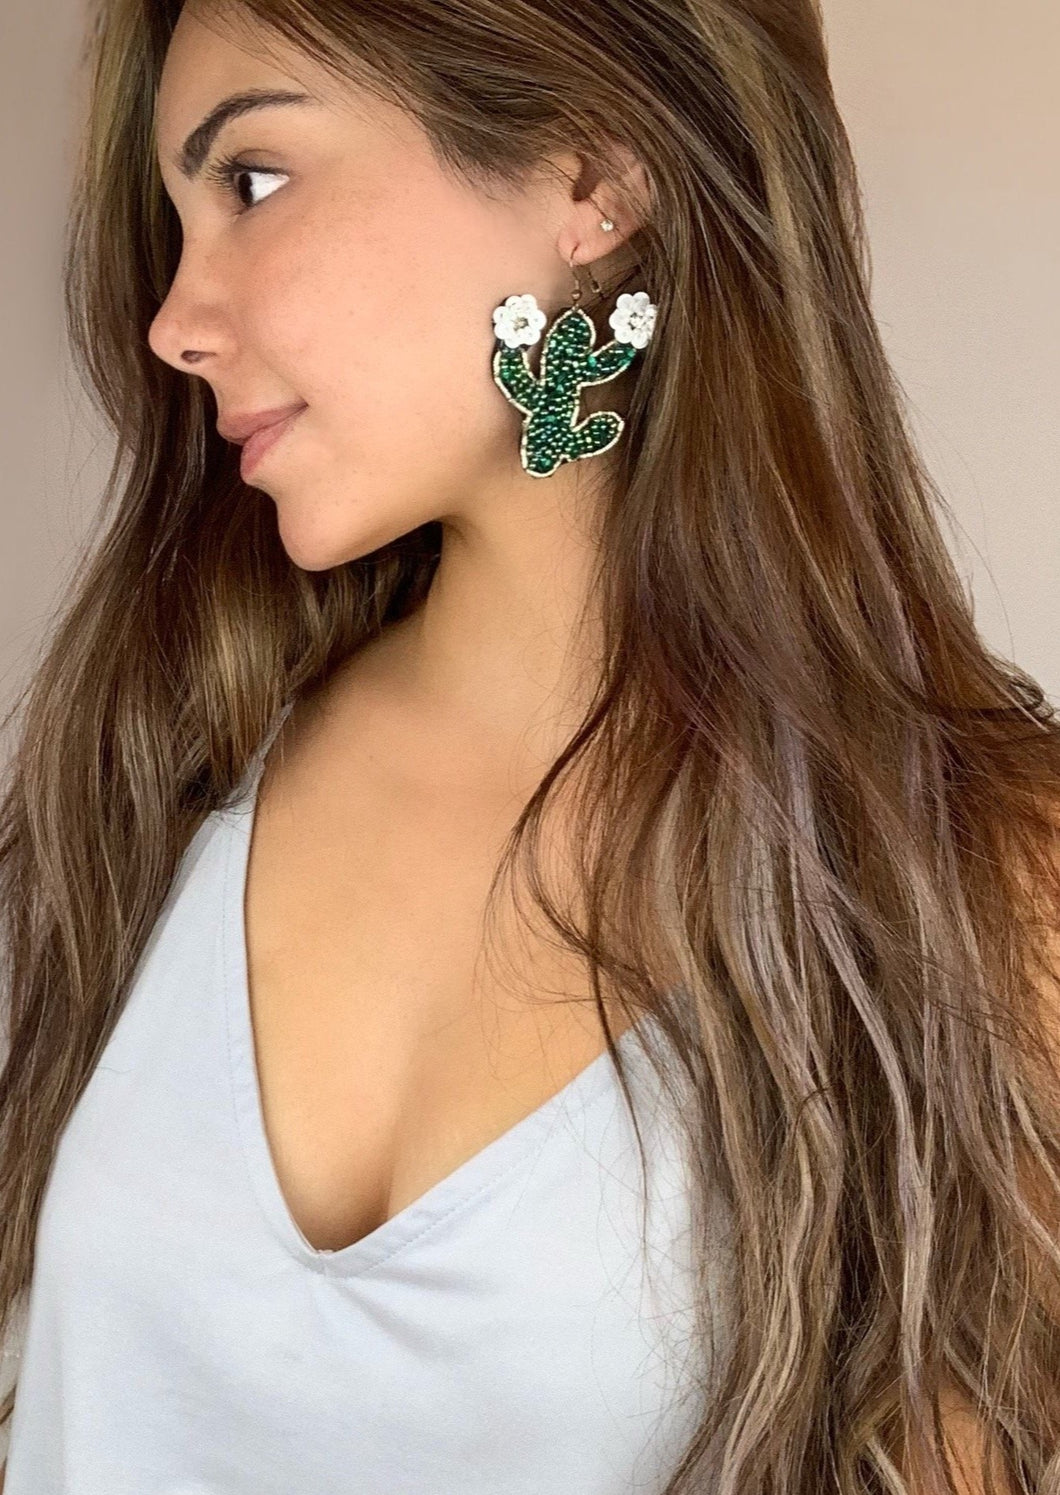 Iridescent Cactus Earrings